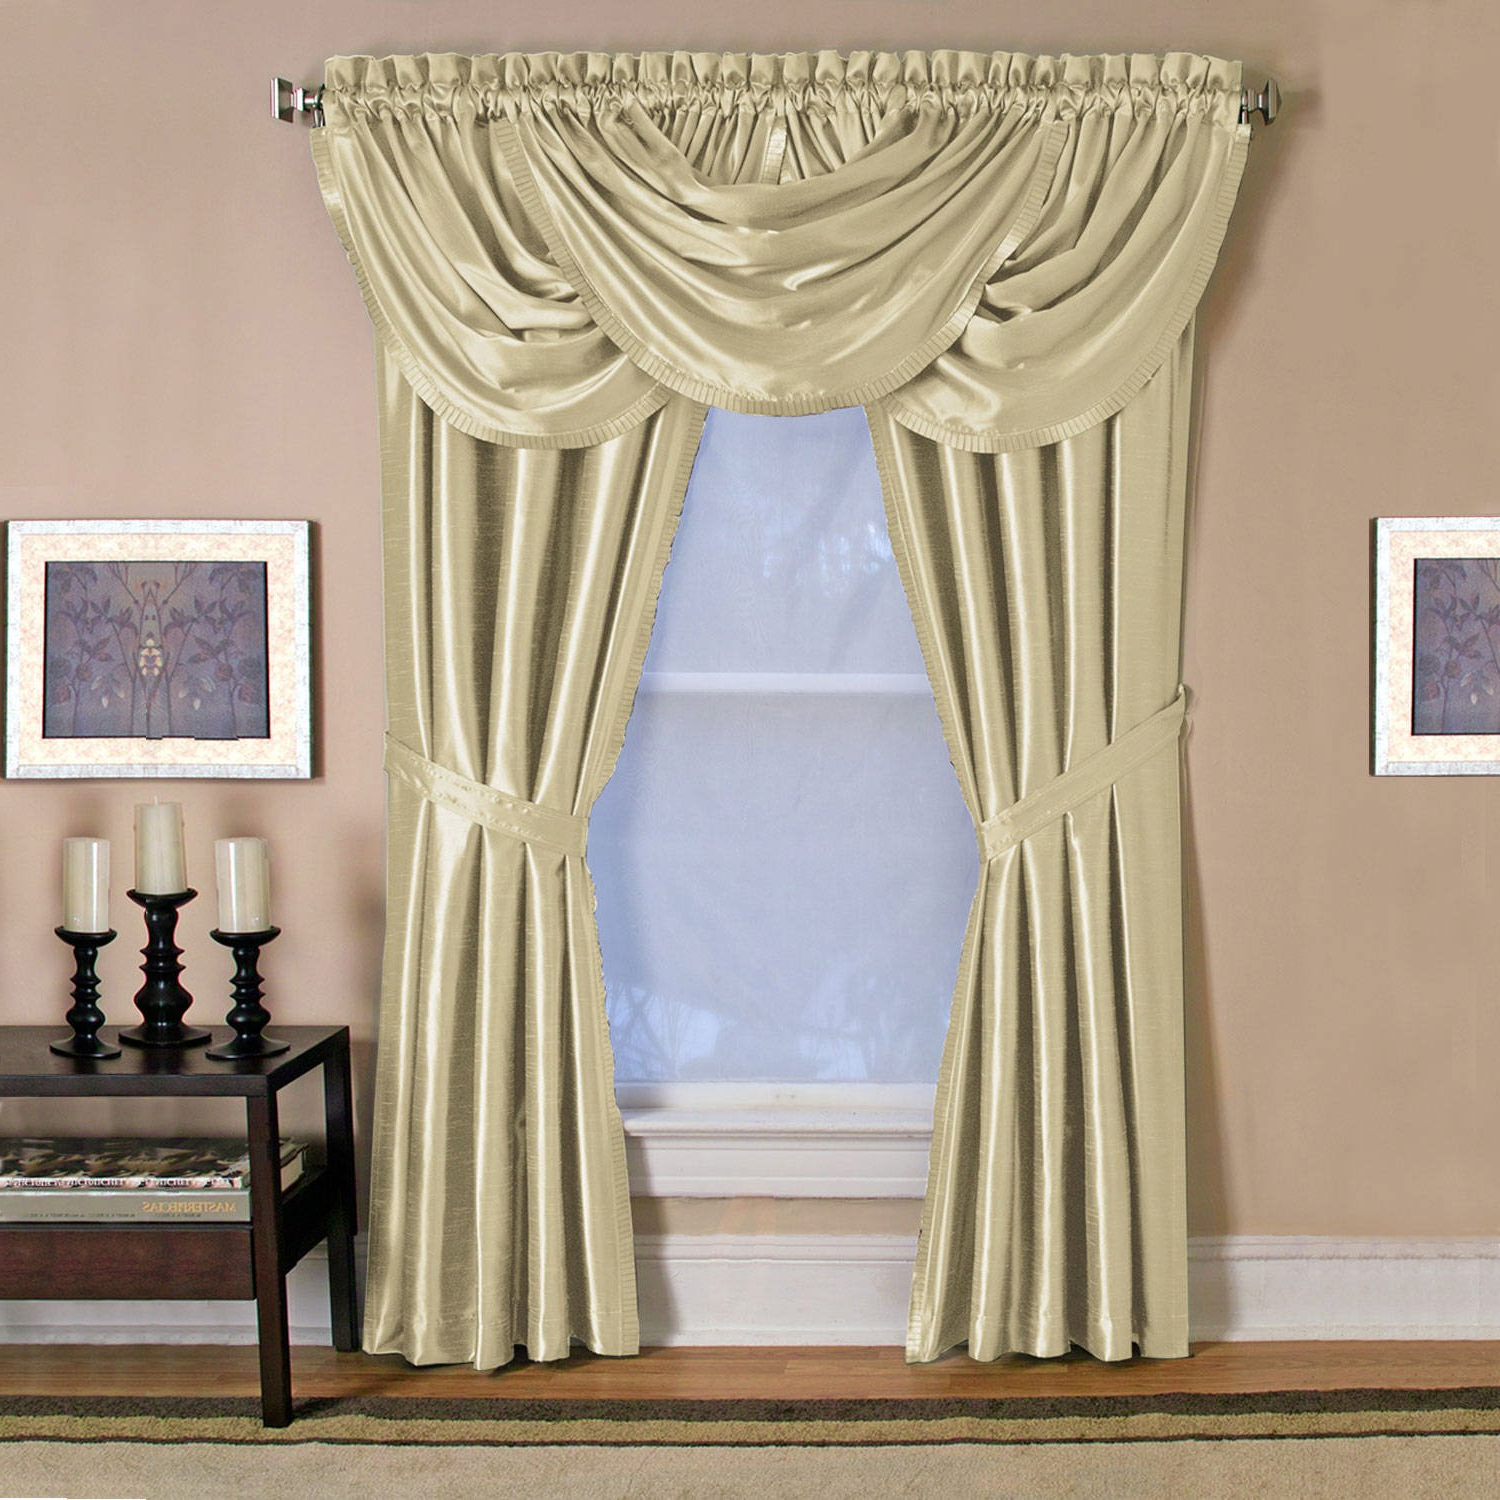 "2020 Elrene Versailles Pleated Blackout Curtain Panels Regarding Elrene Versailles Pleated Blackout Curtain Panel Ivory 52"" Wx 95"" L 95 Inches (View 4 of 20)"